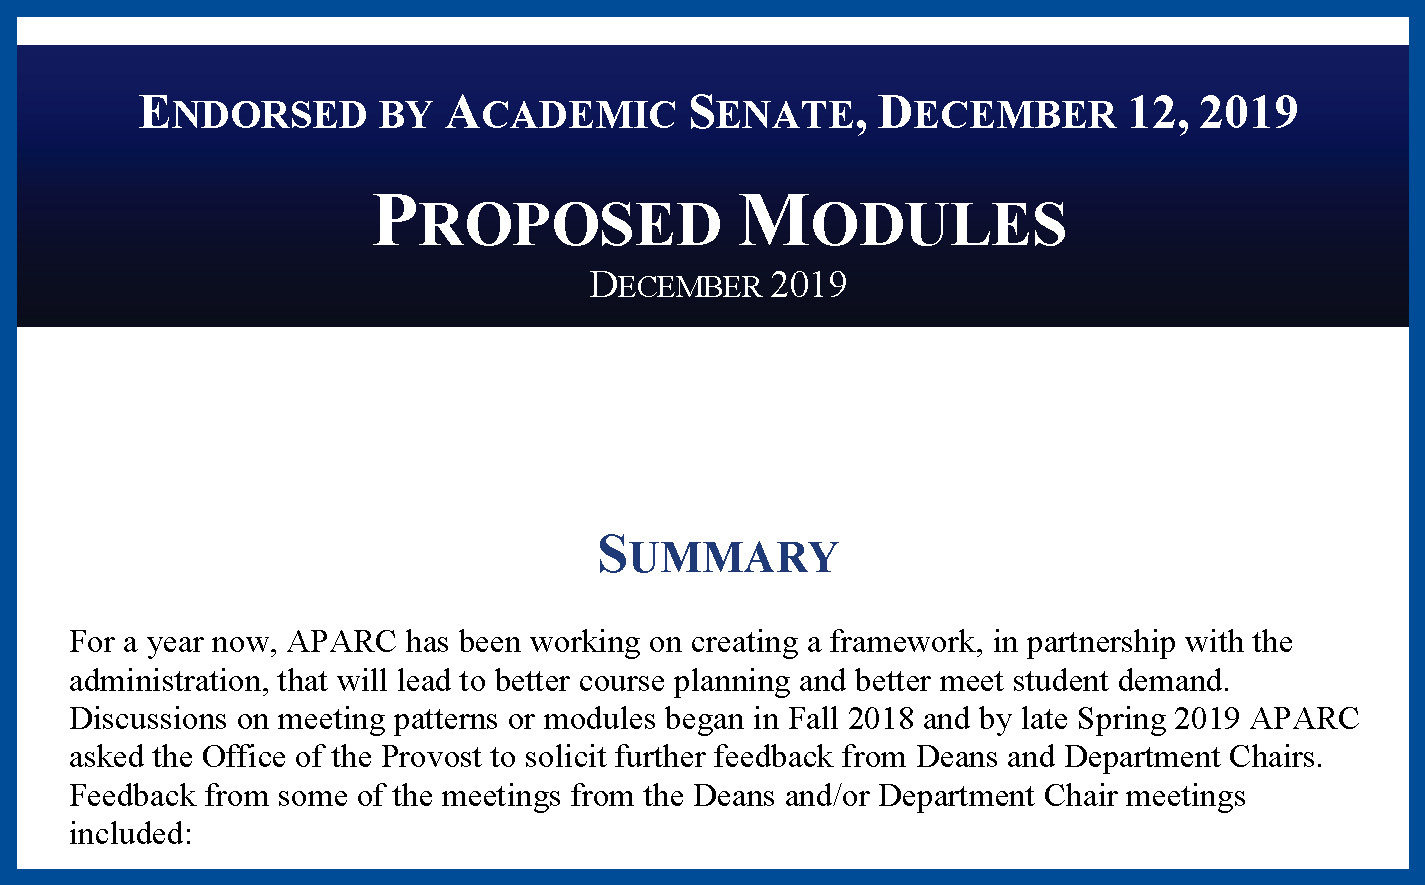 Proposed Class Modules - December 2019